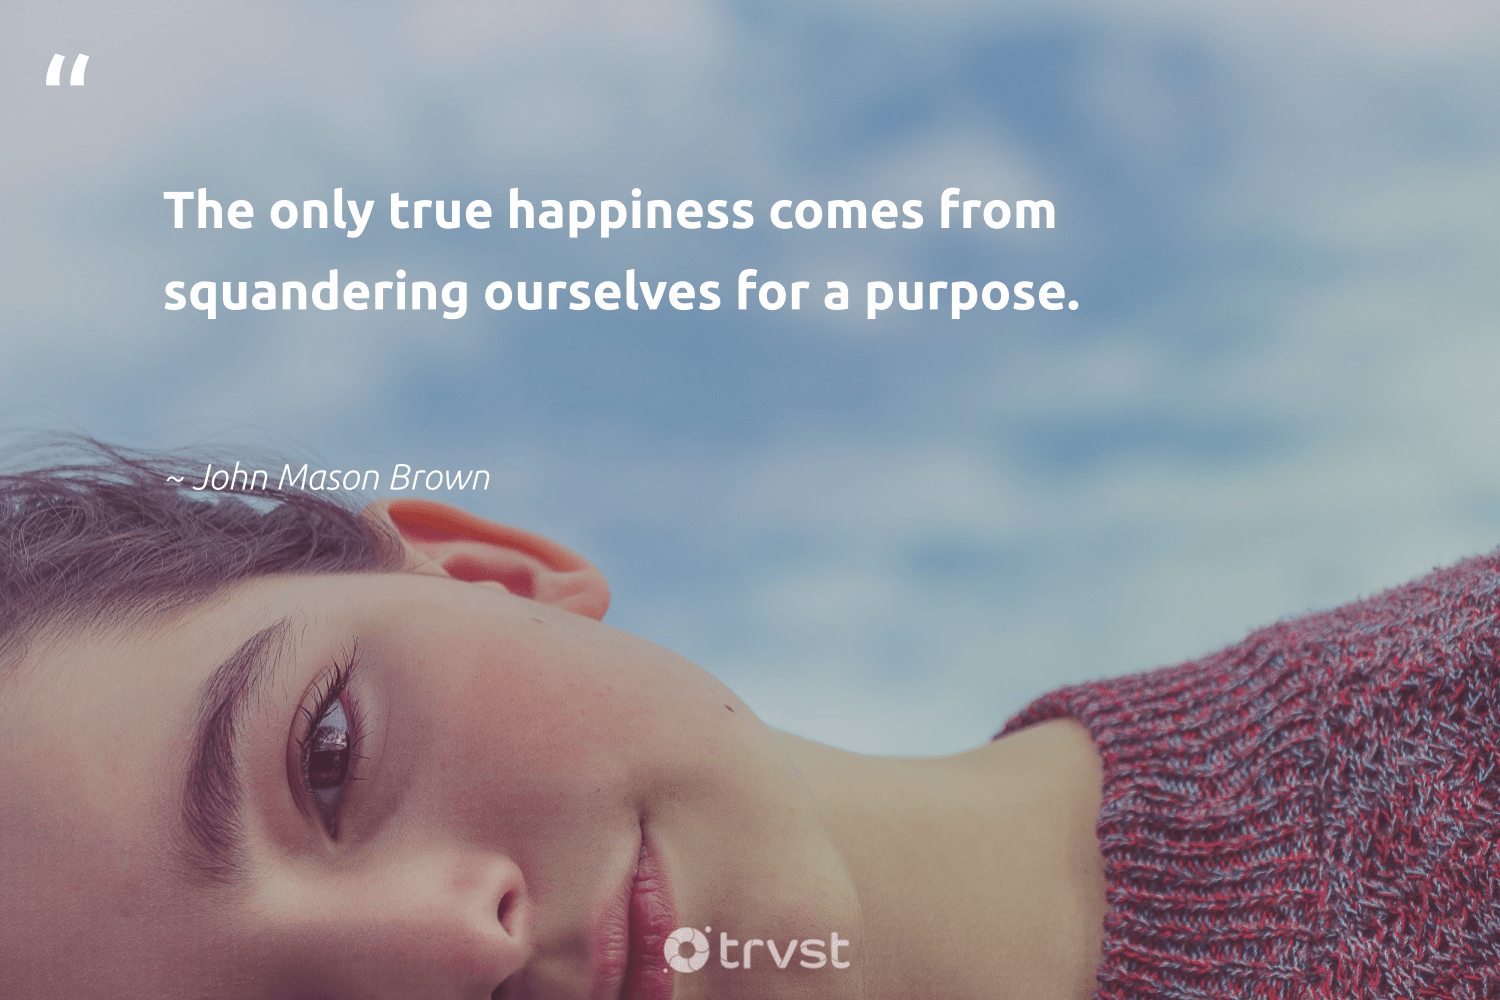 """""""The only true happiness comes from squandering ourselves for a purpose.""""  - John Mason Brown #trvst #quotes #purpose #happiness #findingpupose #health #mindset #dotherightthing #purposedriven #changemakers #togetherwecan #gogreen"""